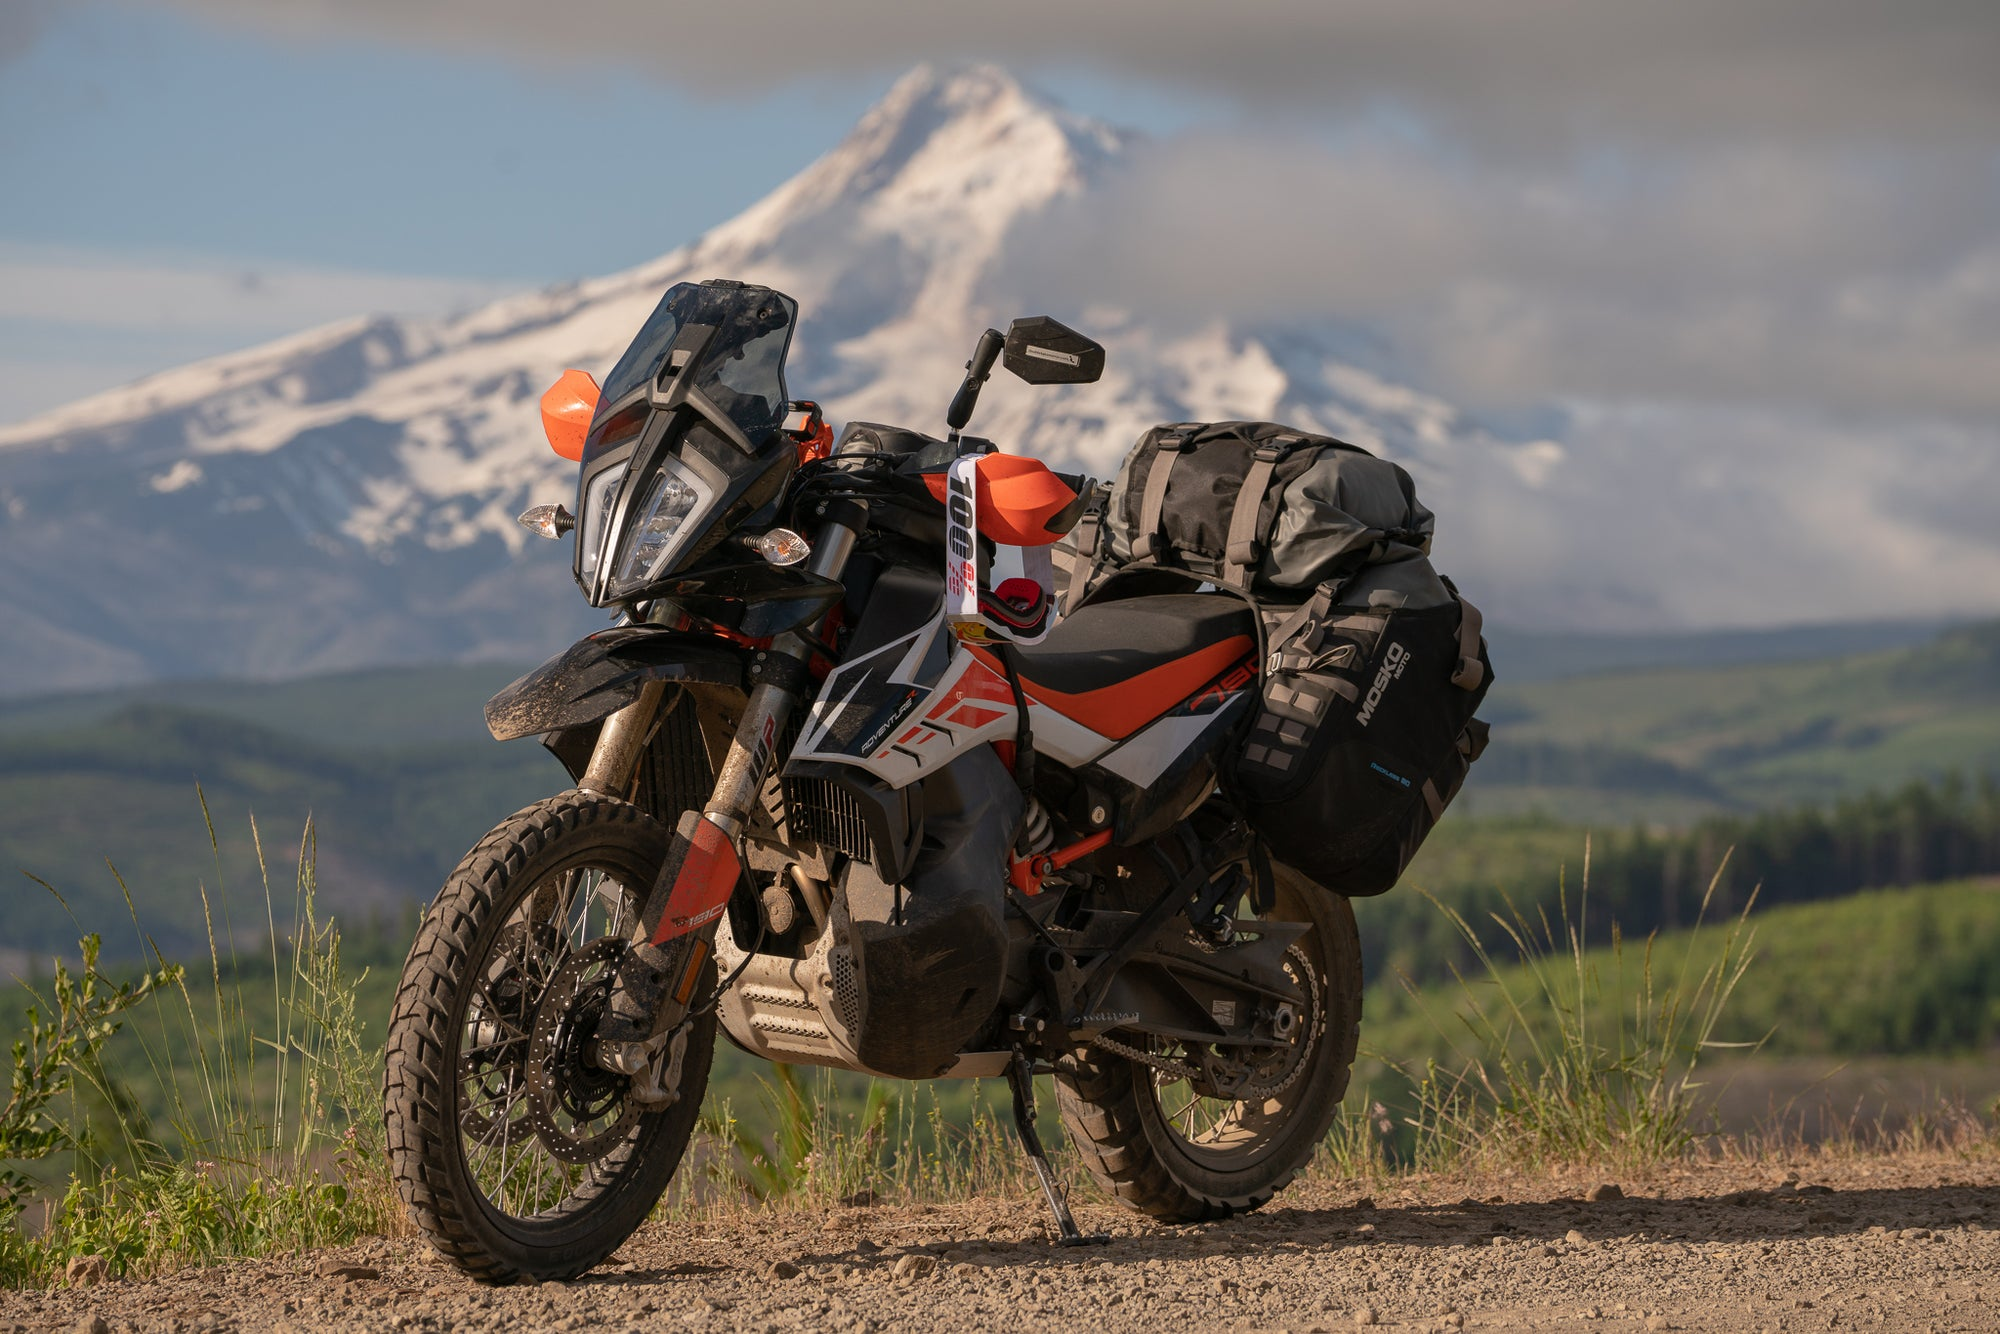 How To: KTM 790 Adventure/ Adventure R Oil Change